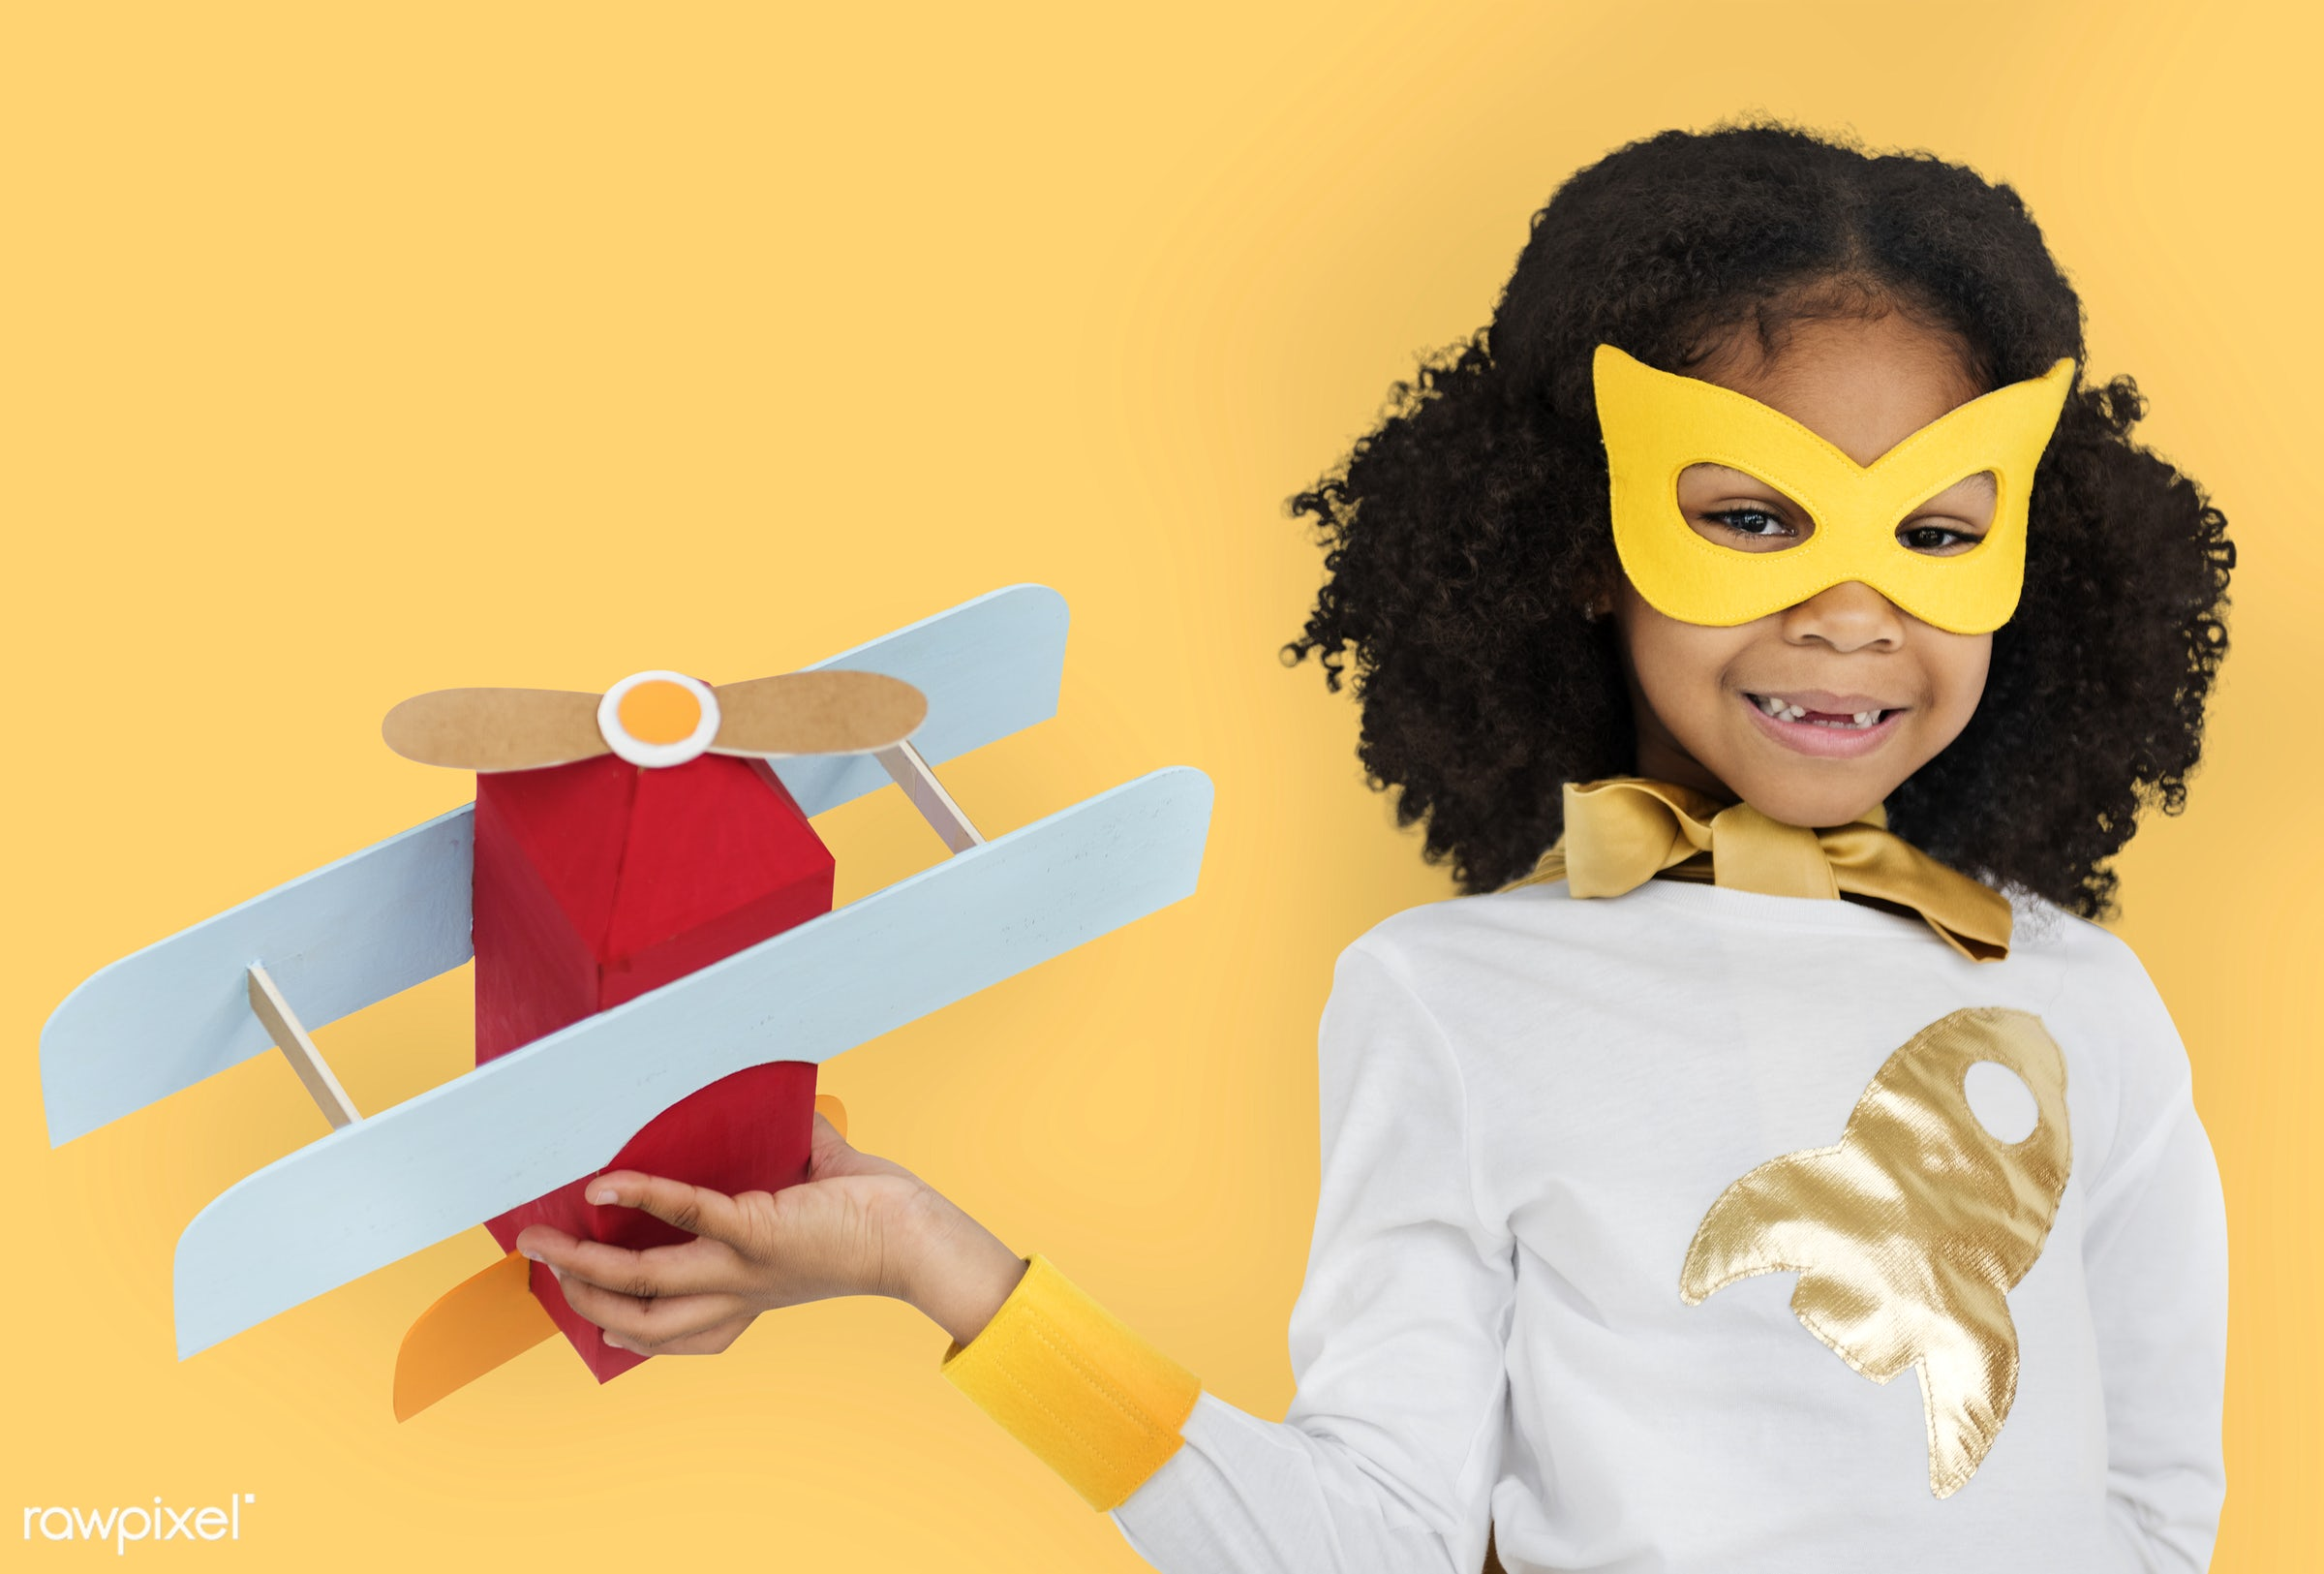 studio, person, model, yellow, transportation, imagination, race, people, aviation, girl, style, solo, lifestyle, casual,...